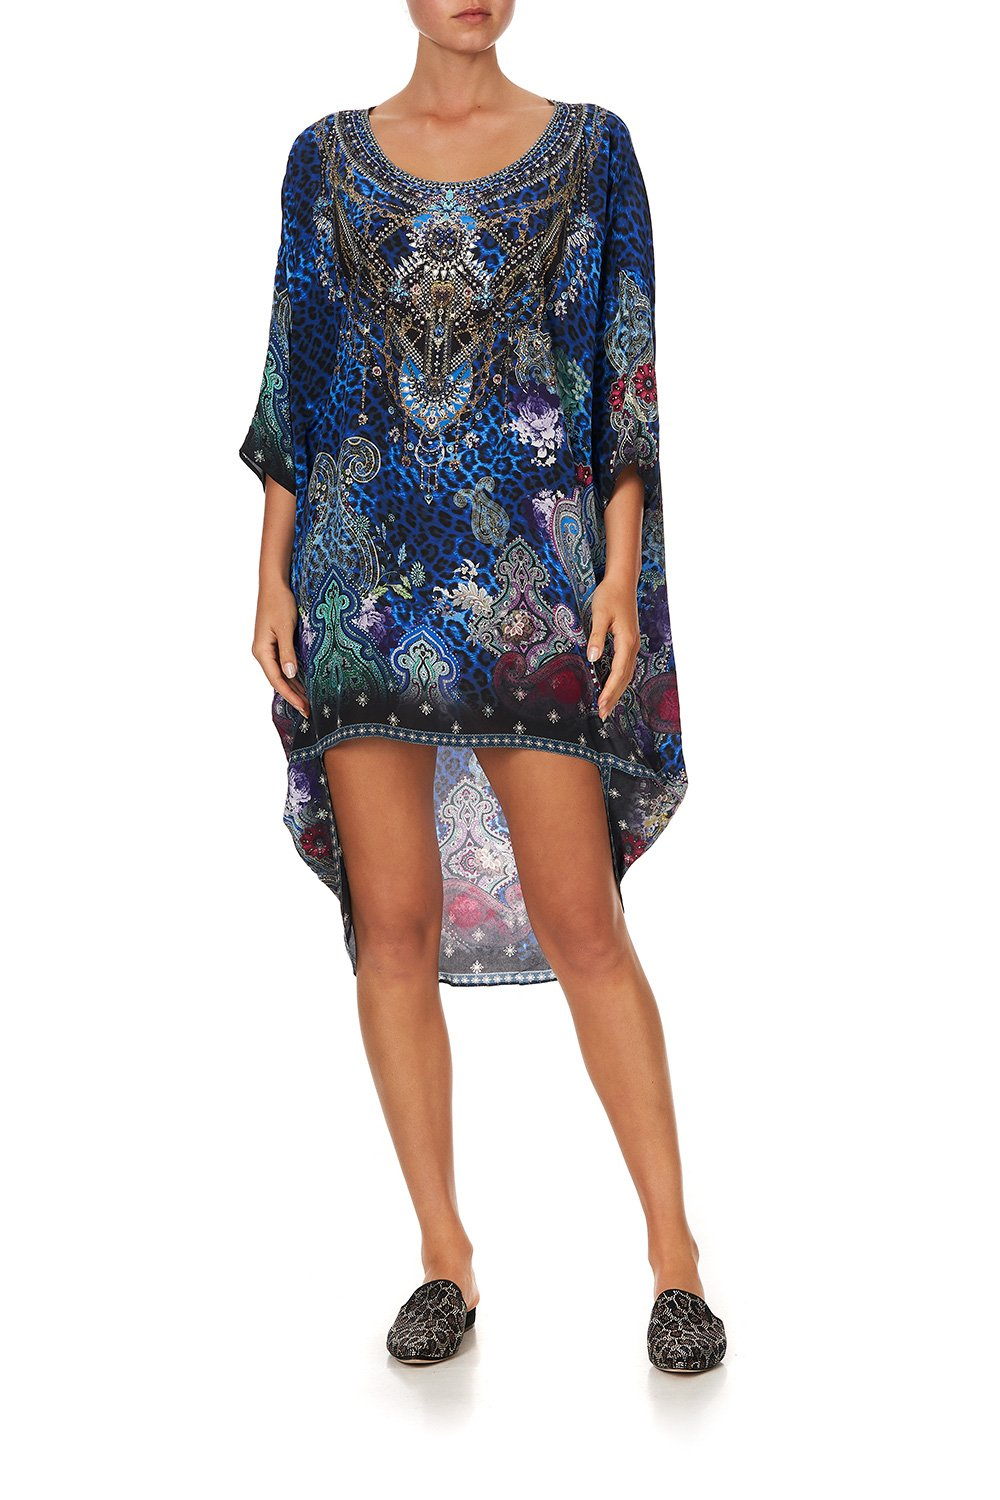 SCOOP BACK HEM DRESS CAMDEN MOON